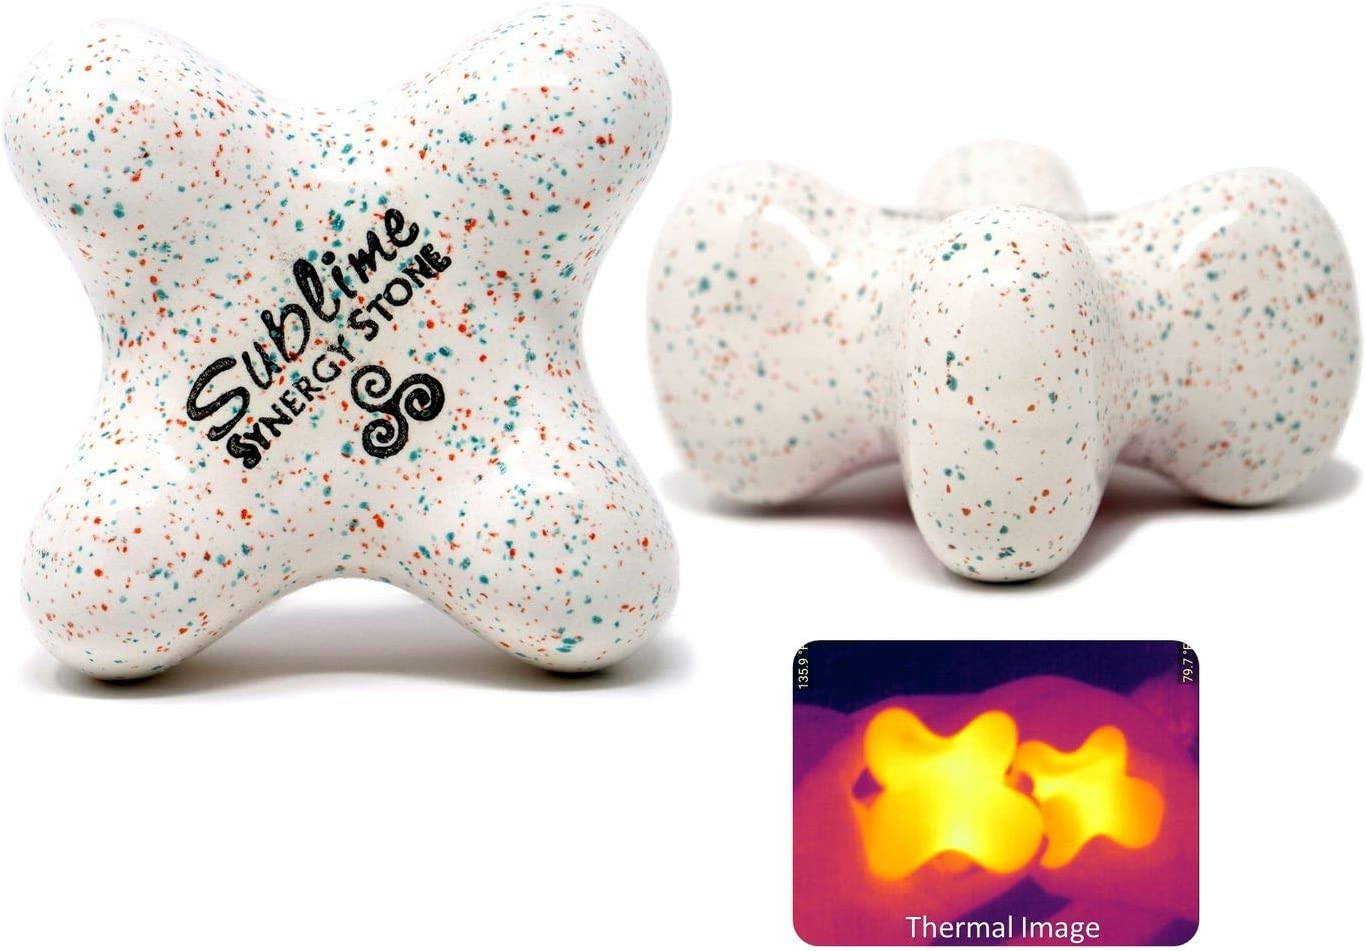 Sublime Candy Single Synergy Stone – Contoured Hot Stone Massage Tool – Relaxing and Therapeutic for Neck, Back, Legs, Feet – Ultra-Smooth for Massage on Skin with Oil or Over Clothes